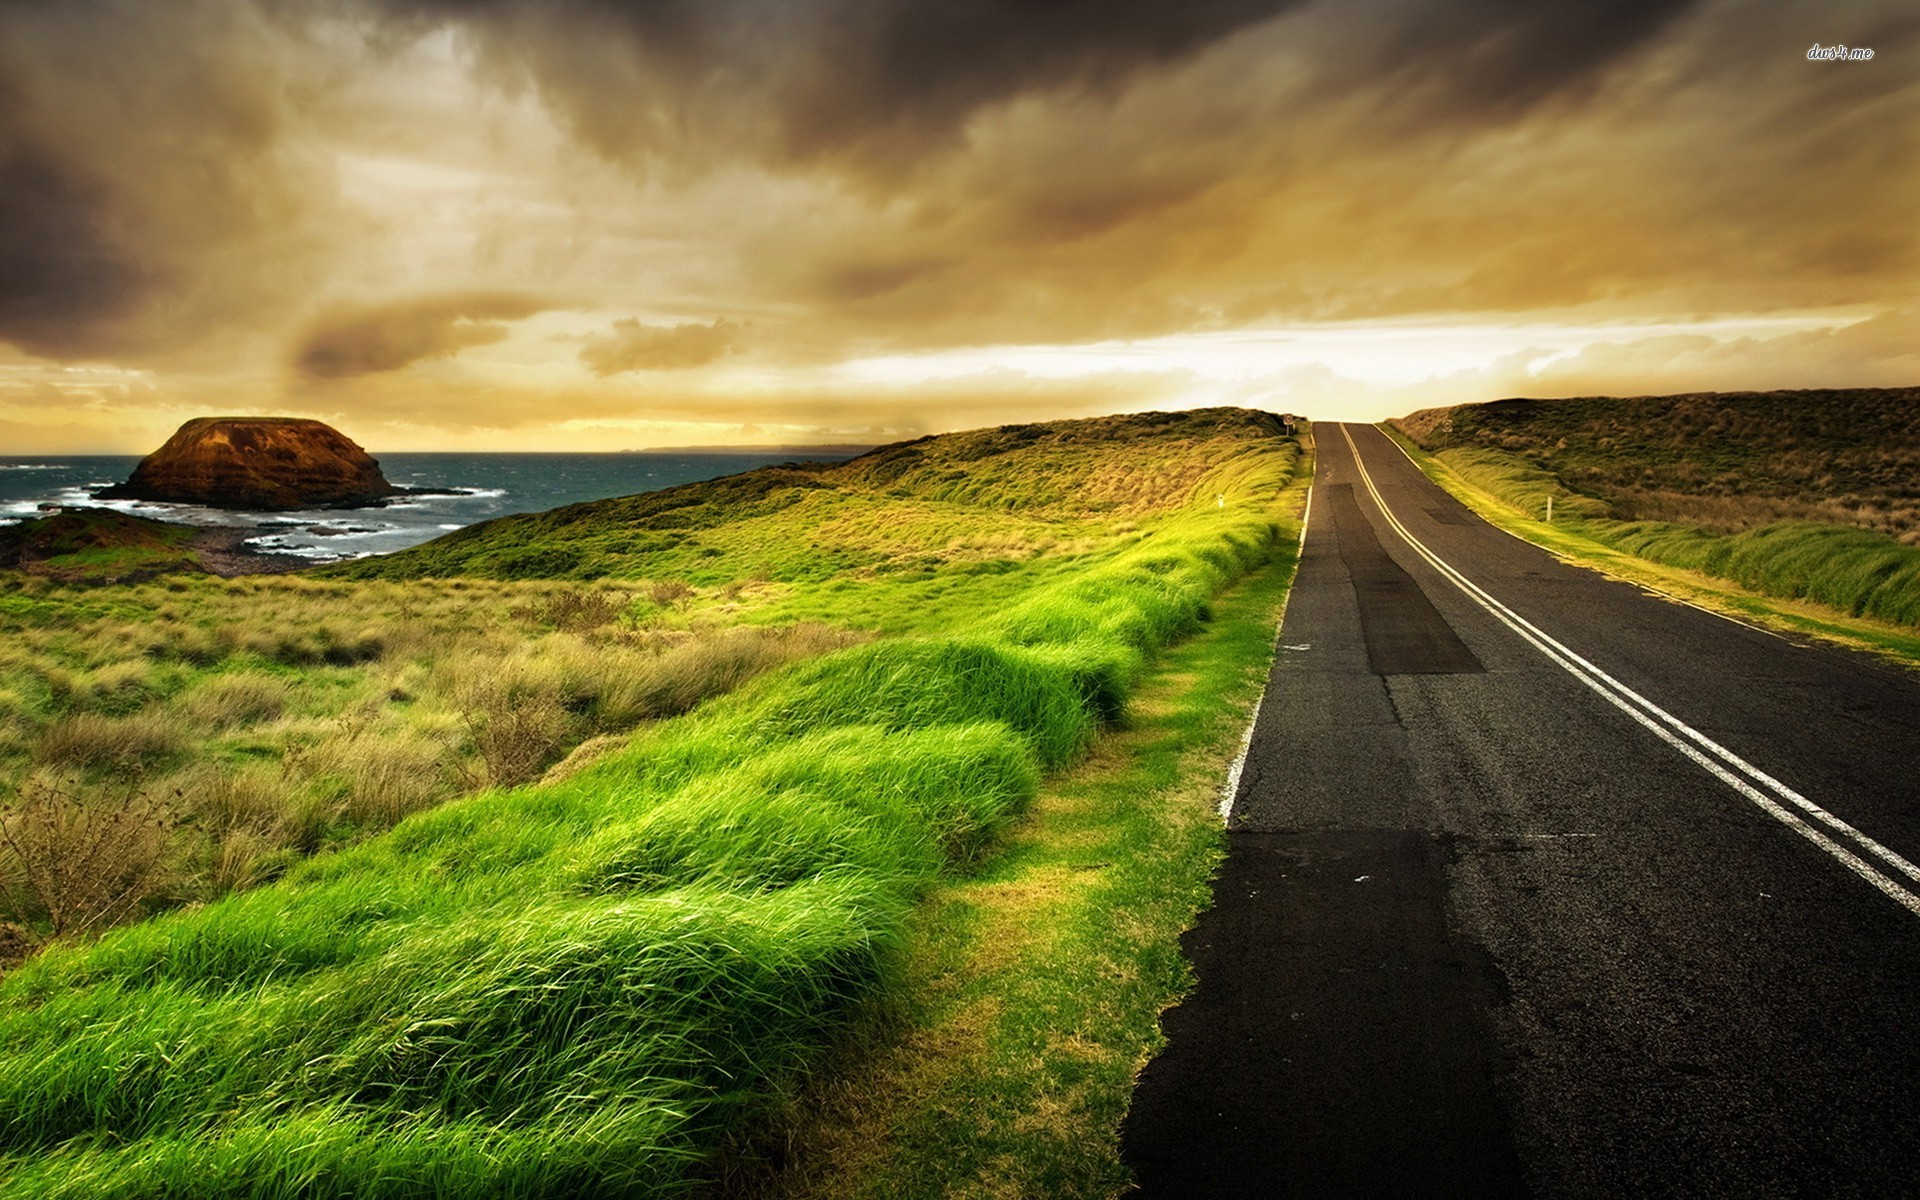 Free Highway Backgrounds & Highway Wallpaper Images In HD